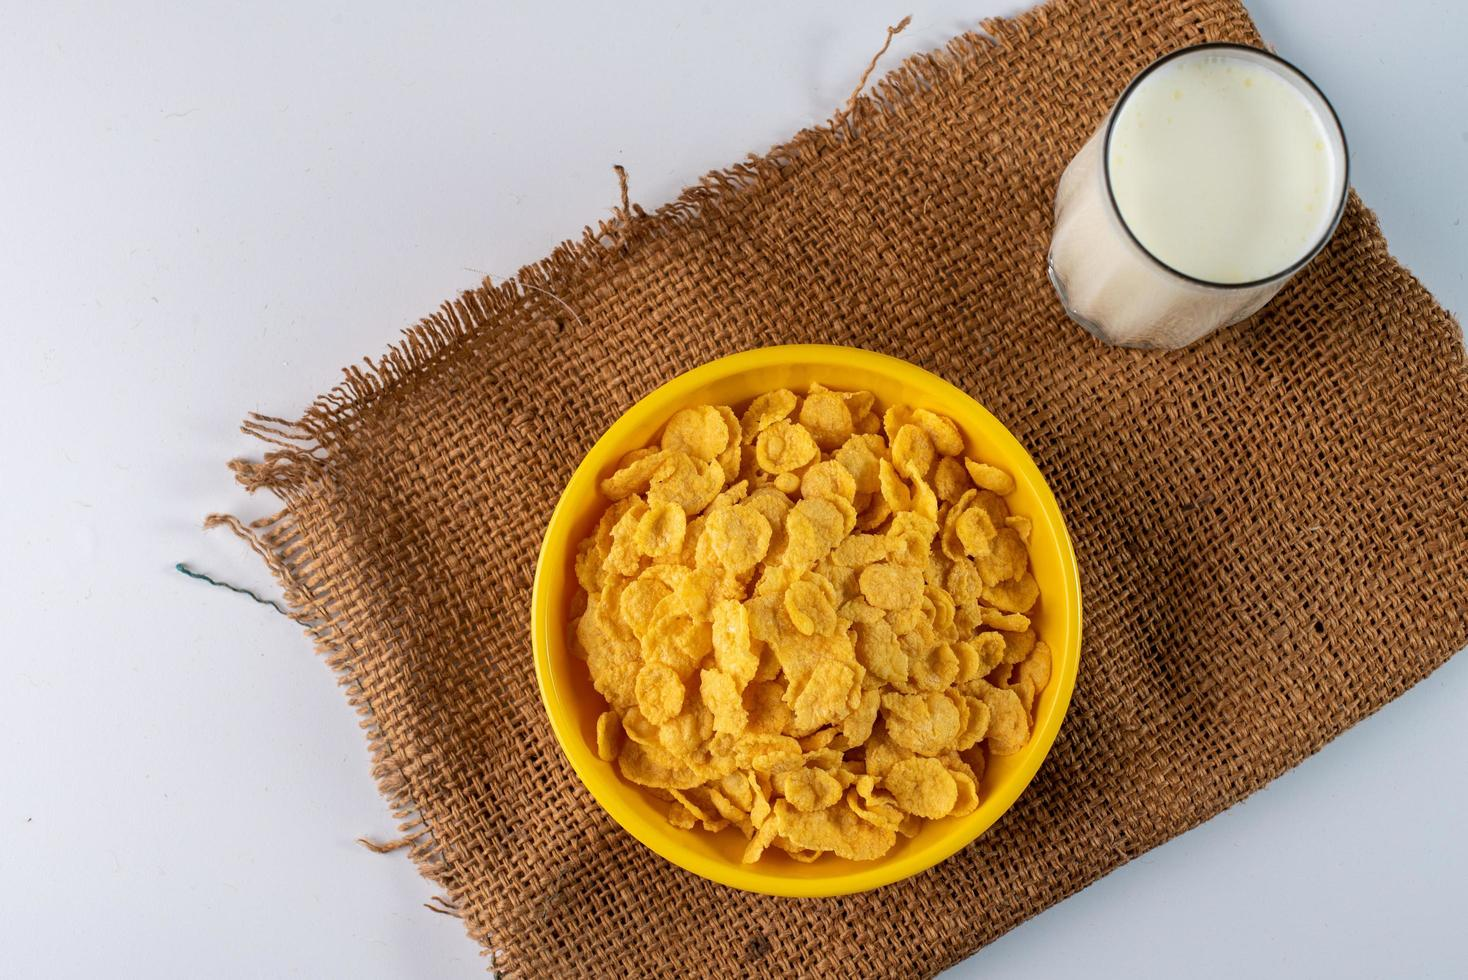 Cereal and milk on neutral background photo